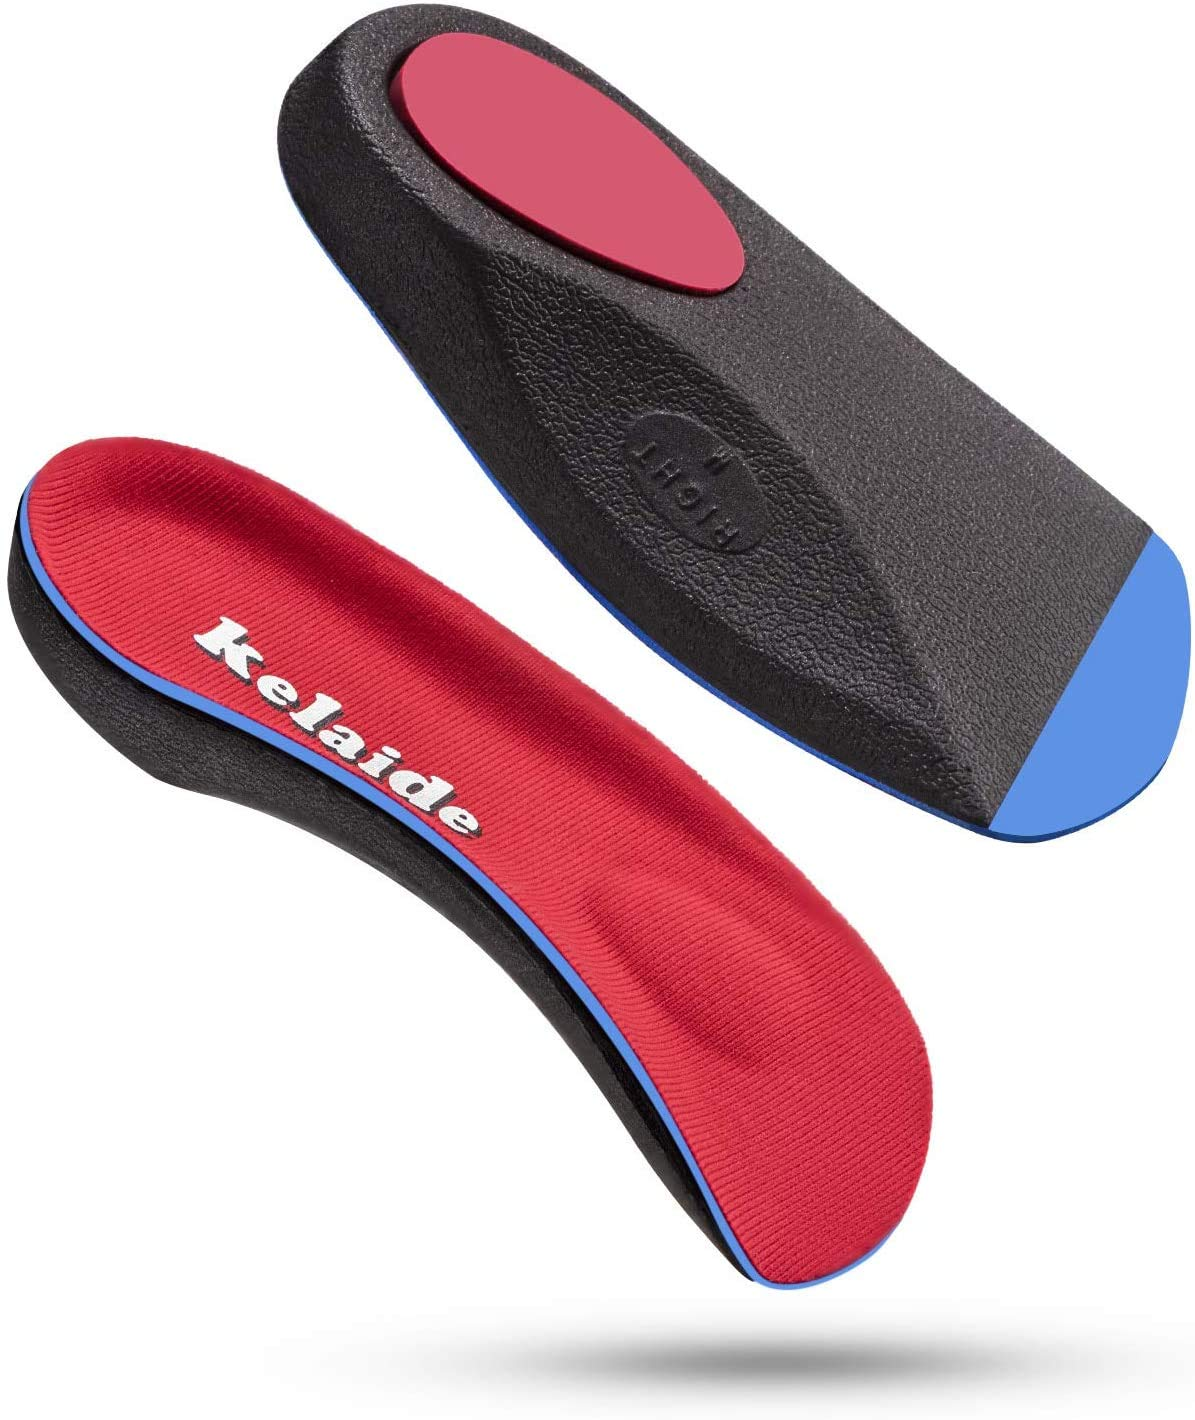 Kelaide Half Length Orthotic Arch Support Insoles for Men & Women, Maximize Heel Comfort, Unisex 7-9, Red